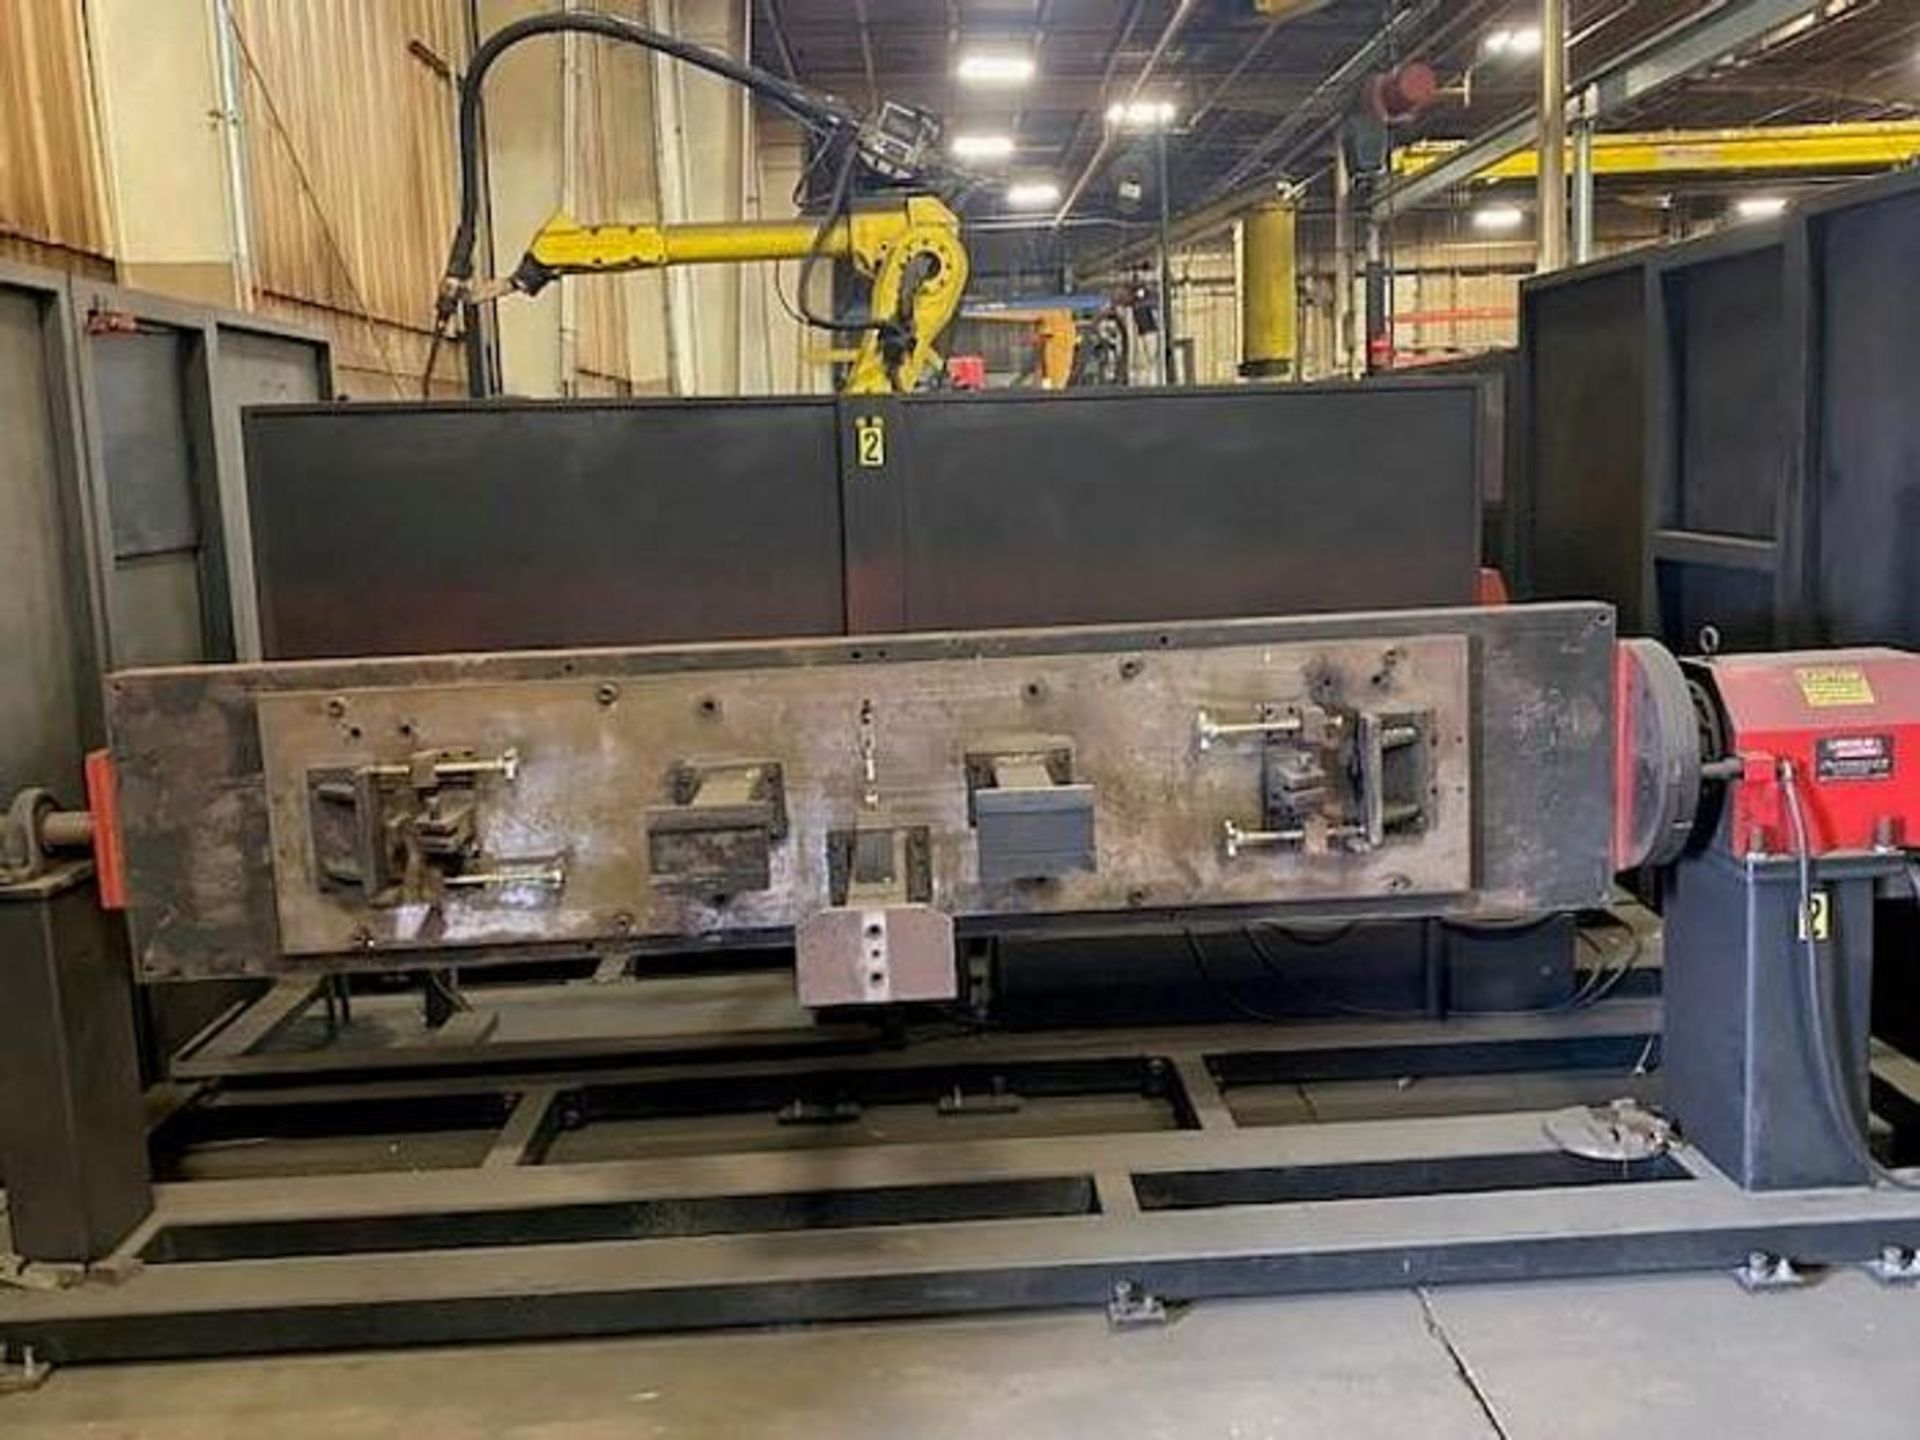 FANUC/LINCOLN DUAL TRUNION WELD CELL, FANUC ROBOT ARCMATE 120iB/10L WITH R-J3iB CONTROL - Image 2 of 11